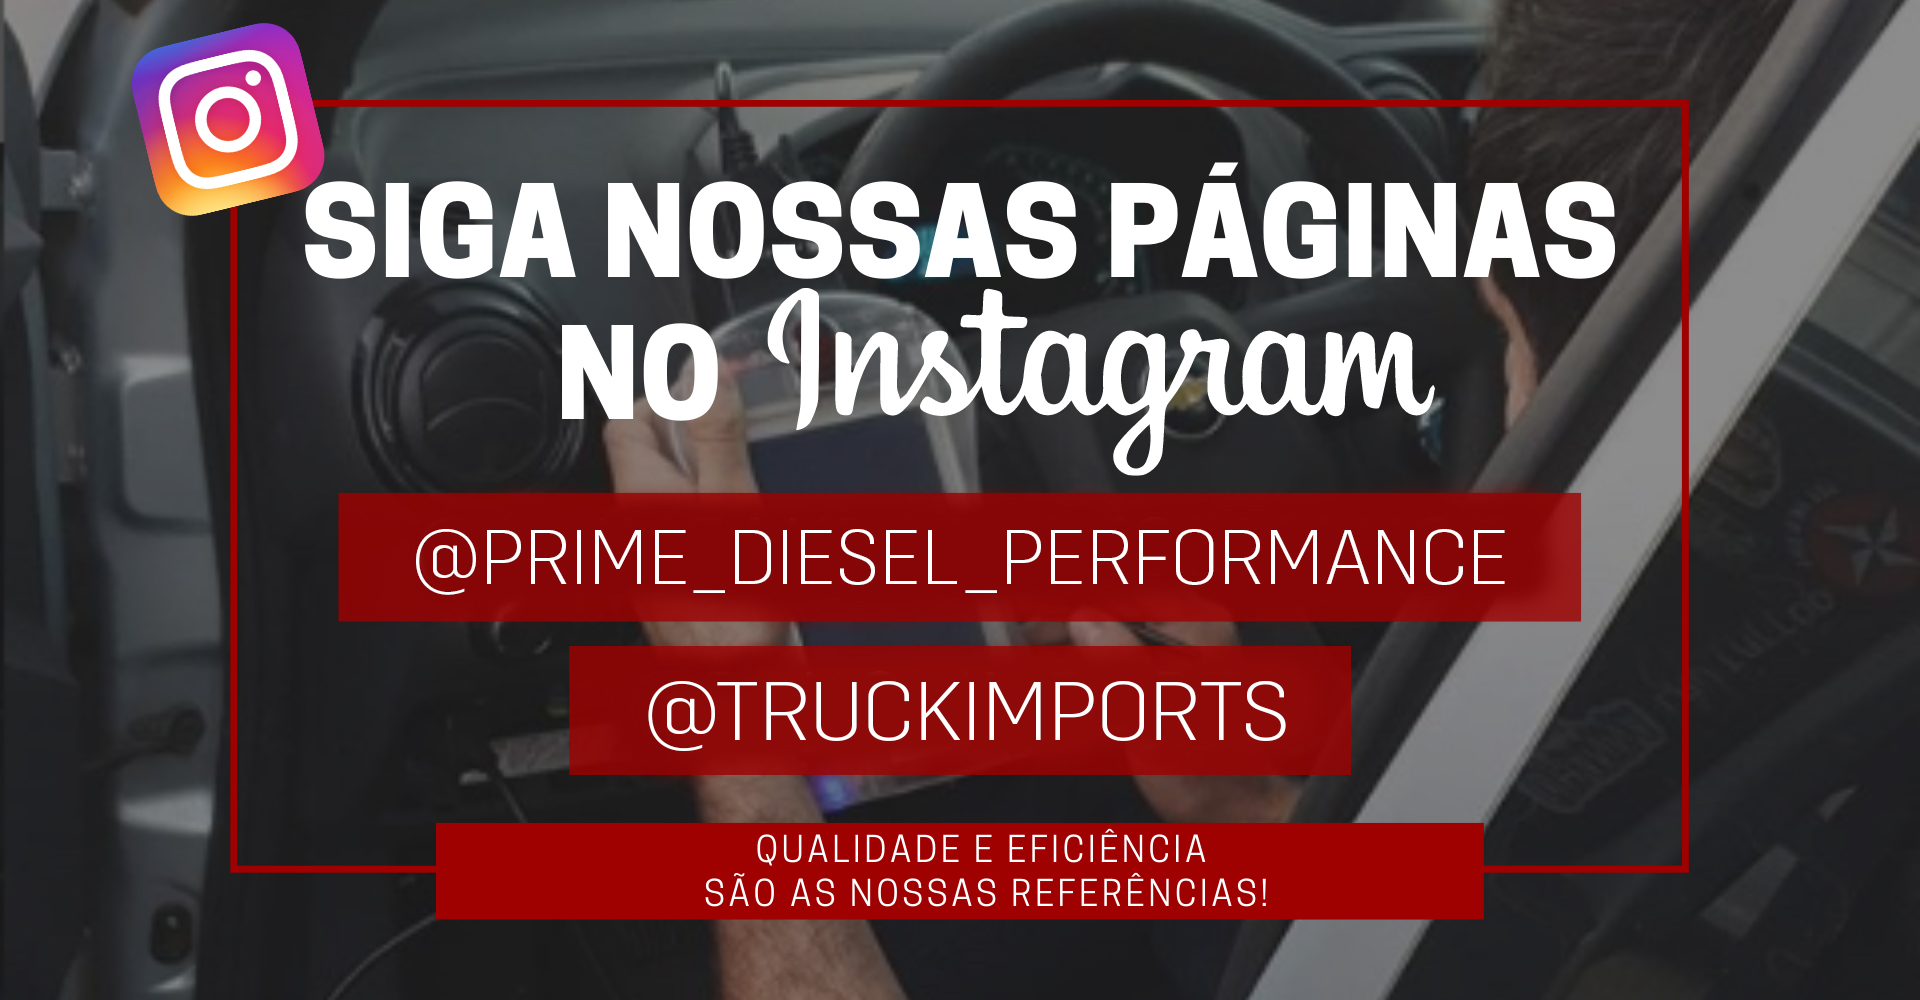 Siga no instagram!